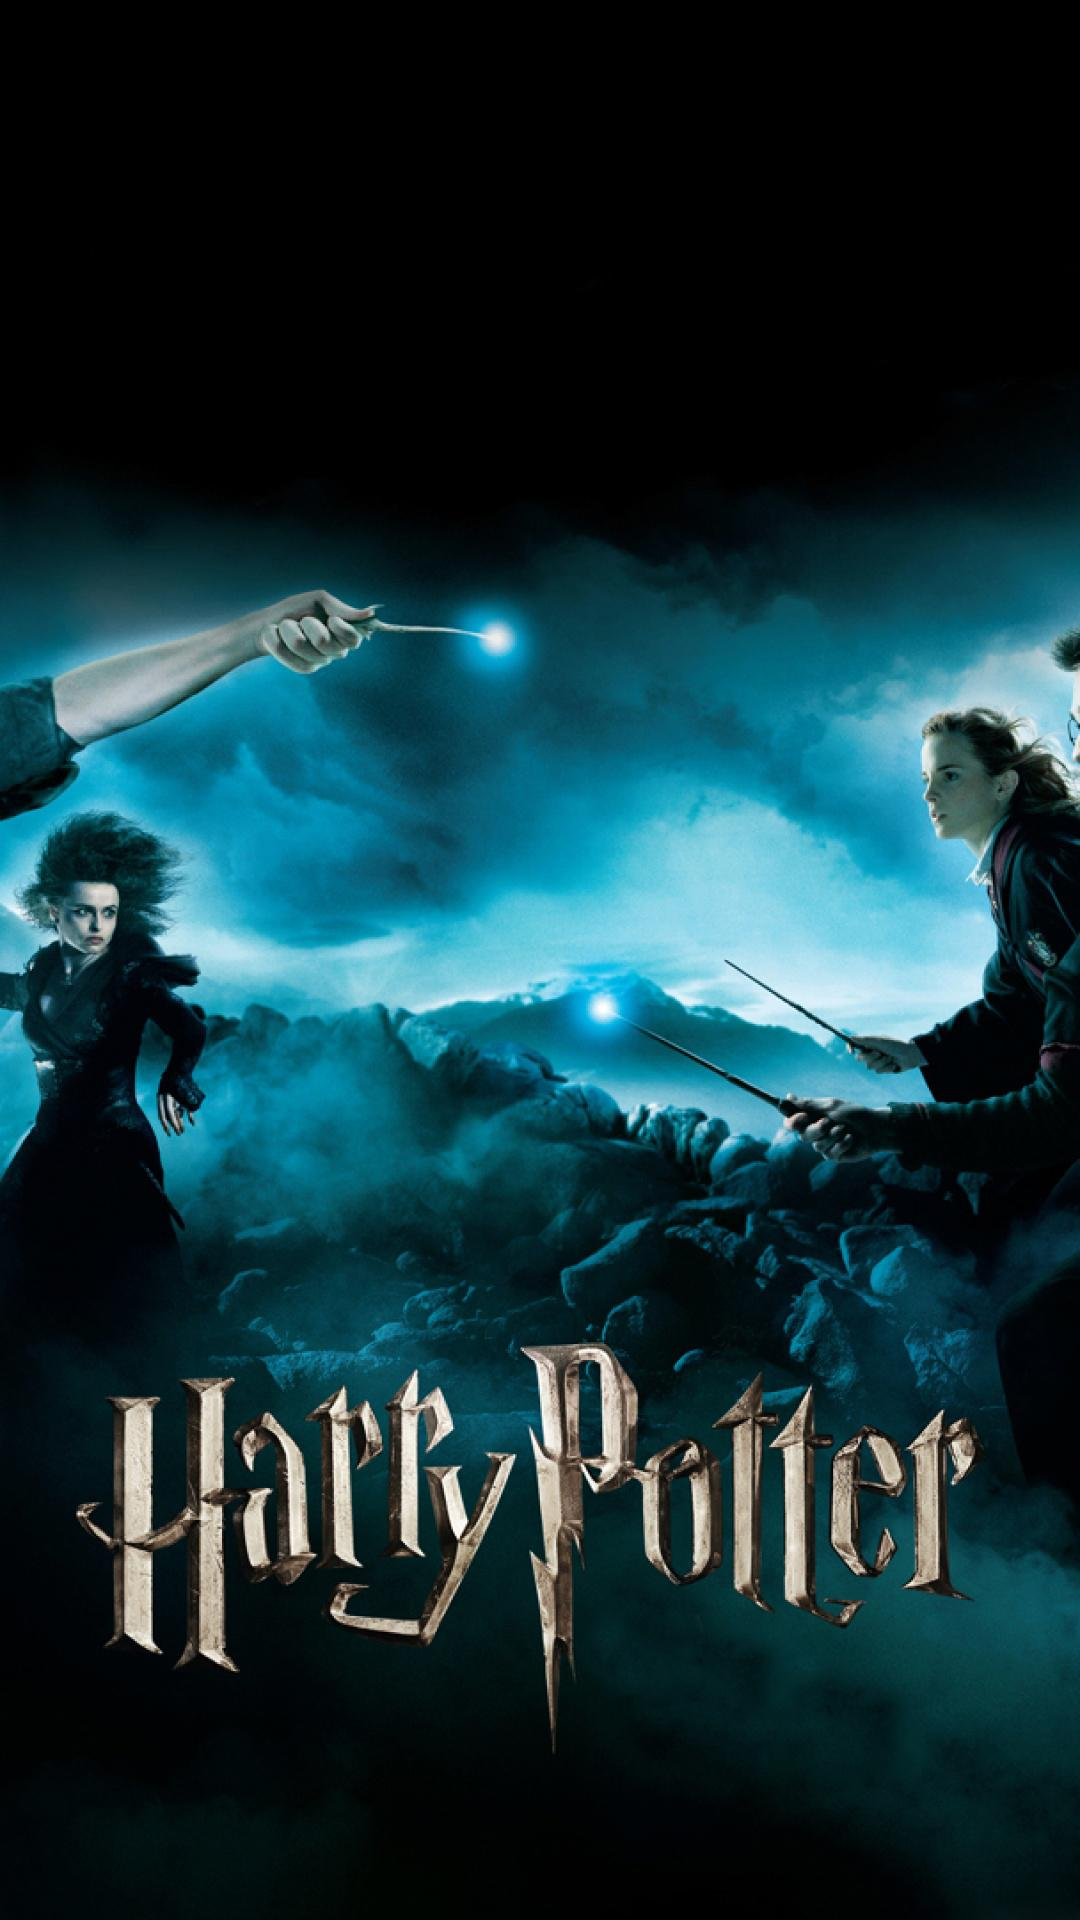 Harry Potter HD Phone Wallpapers - Wallpaper Cave